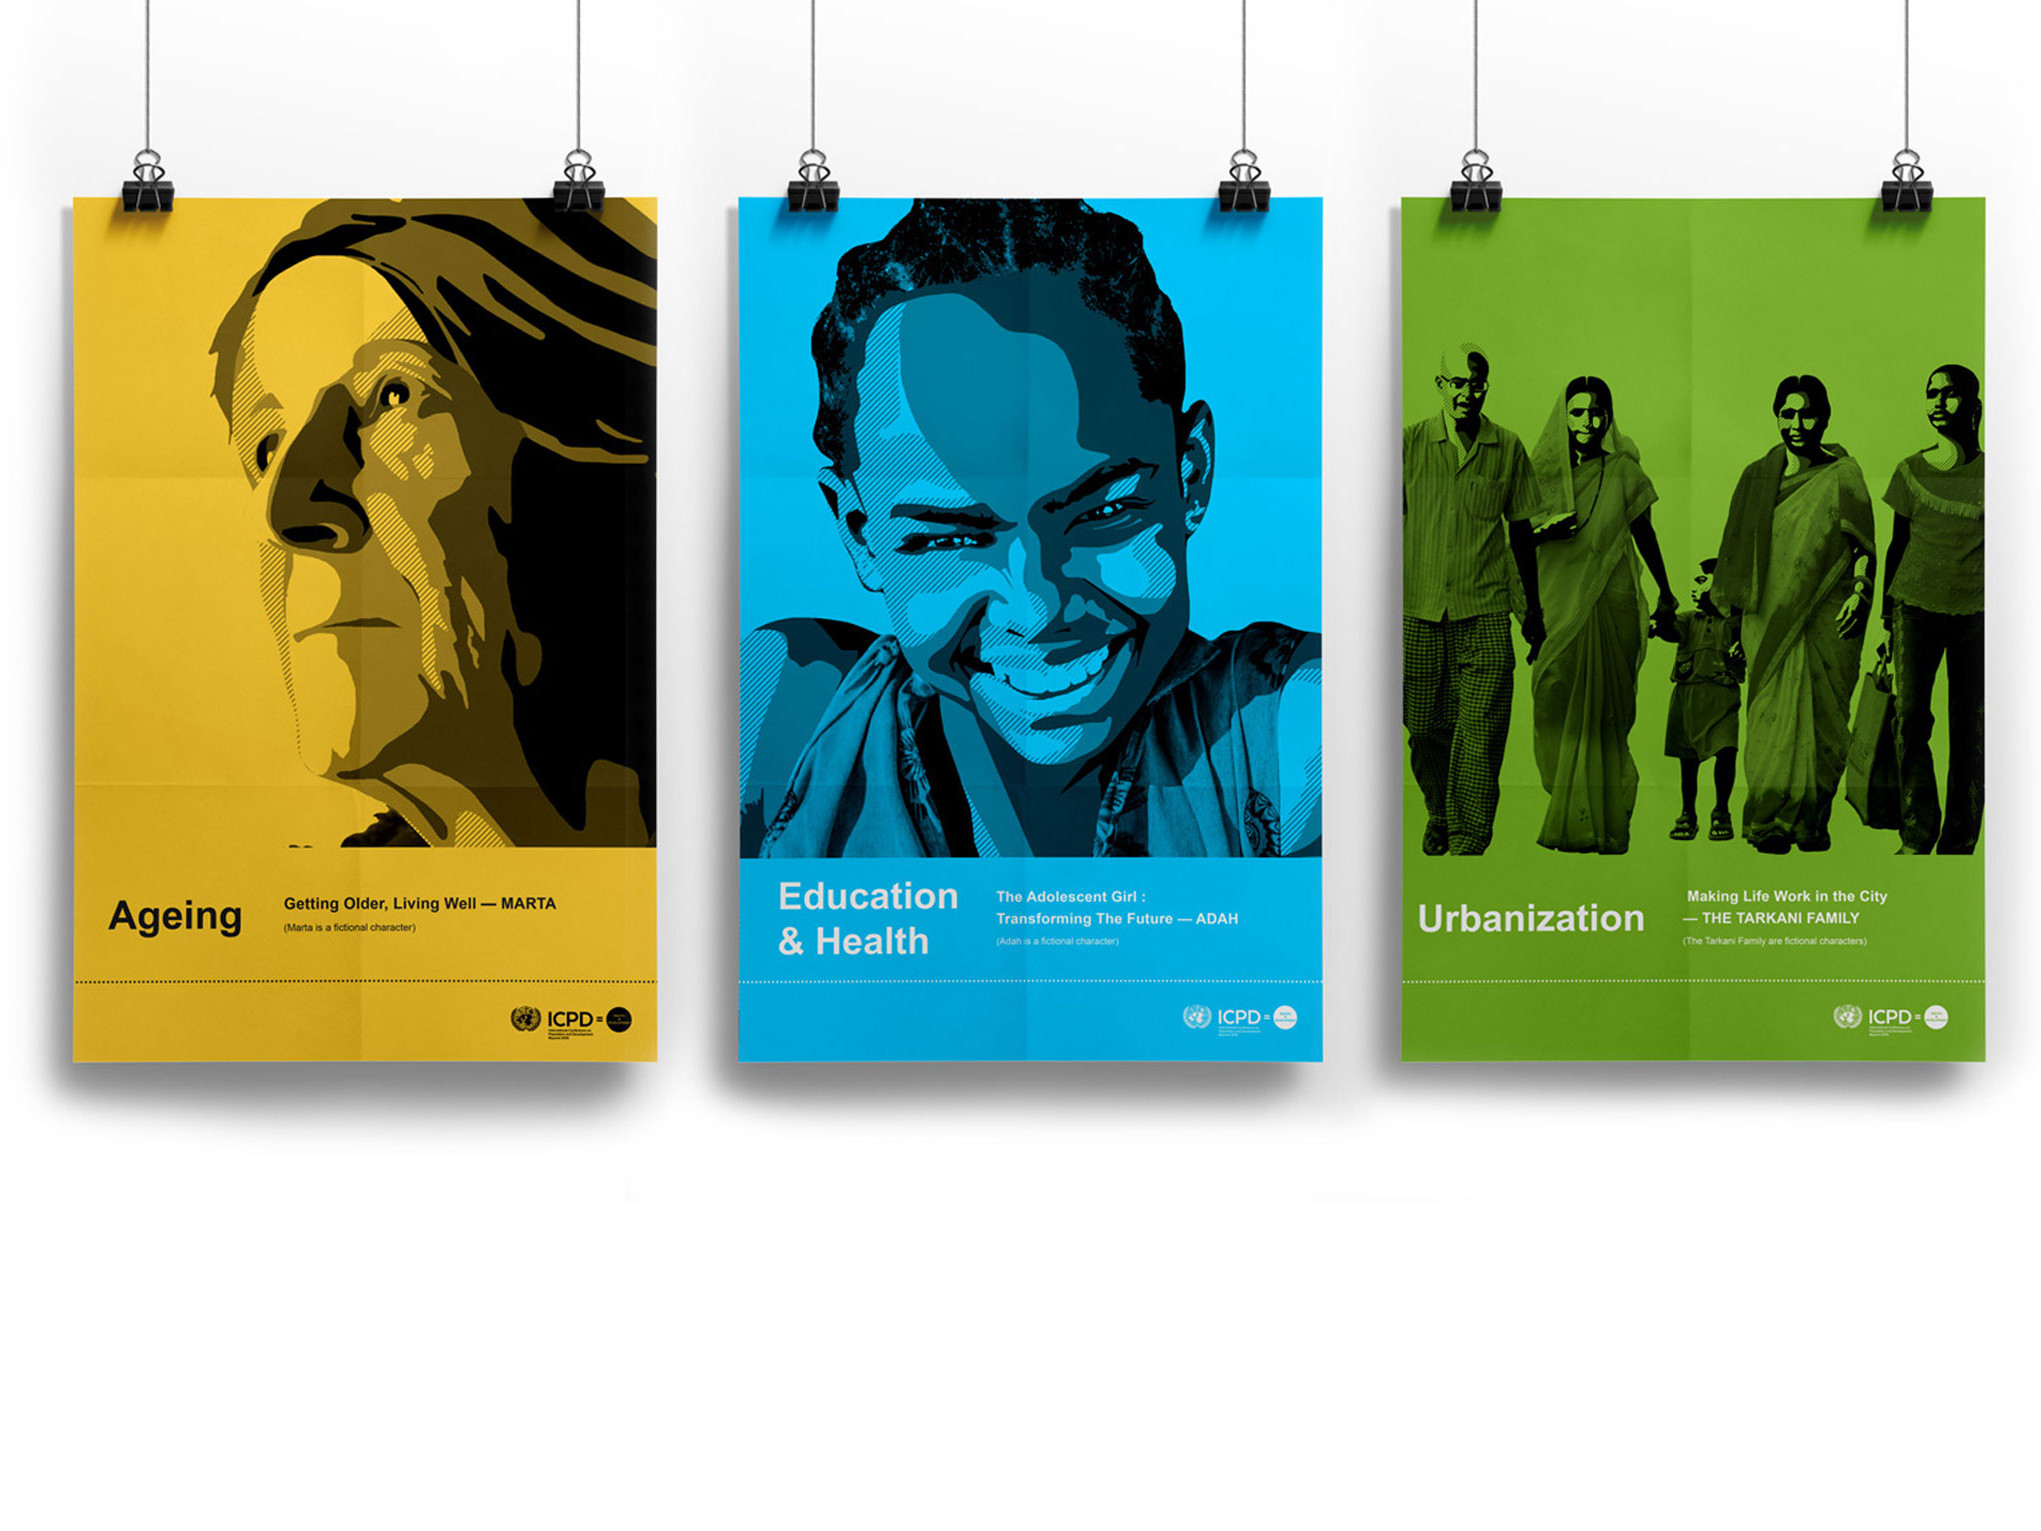 Printed Posters for I.C.P.D. U.N.F.P.A The Dignity Project